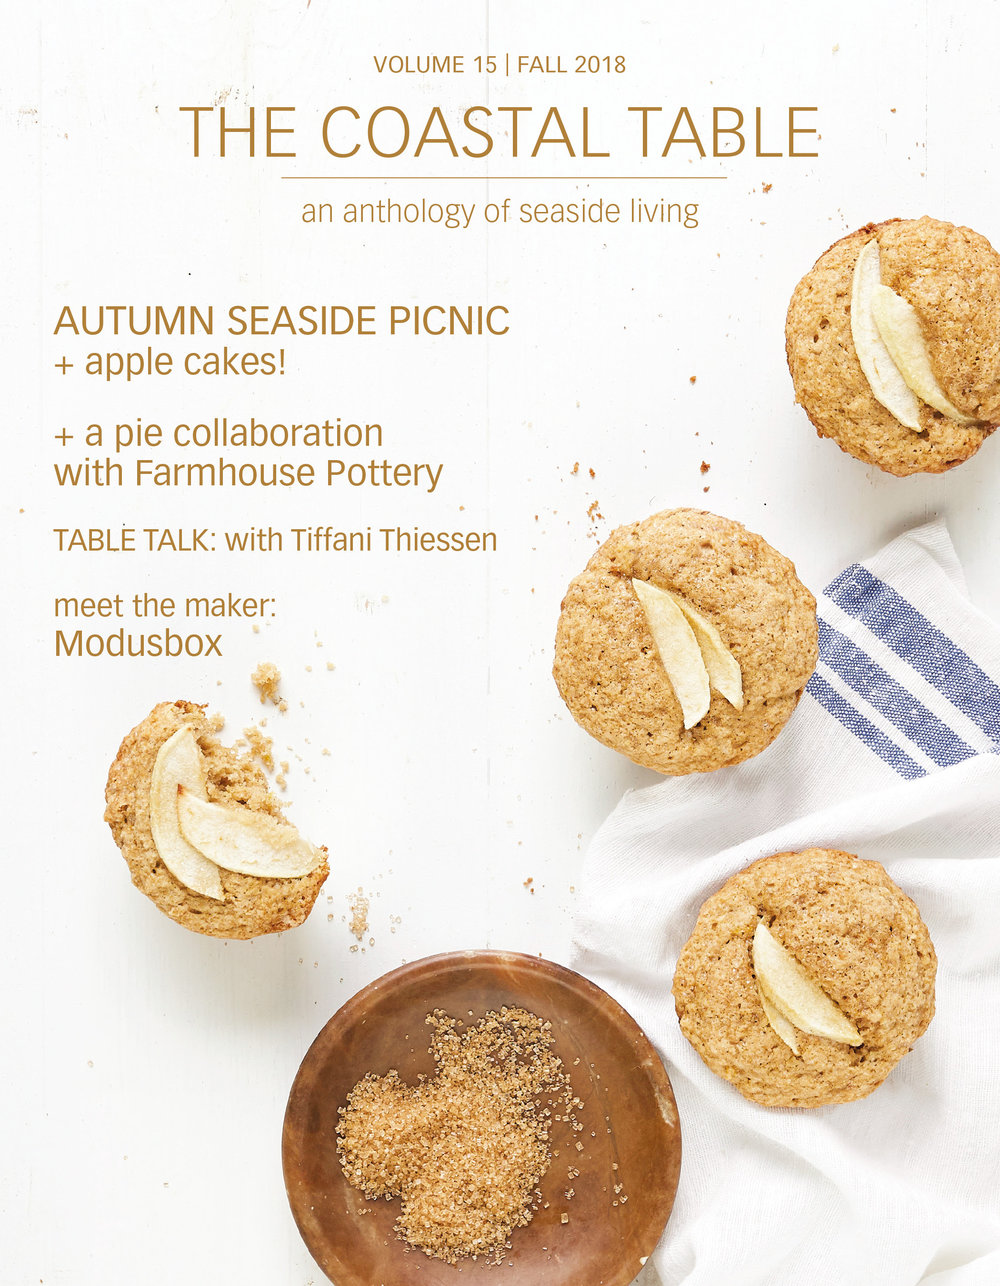 The Coastal Table Fall 2018